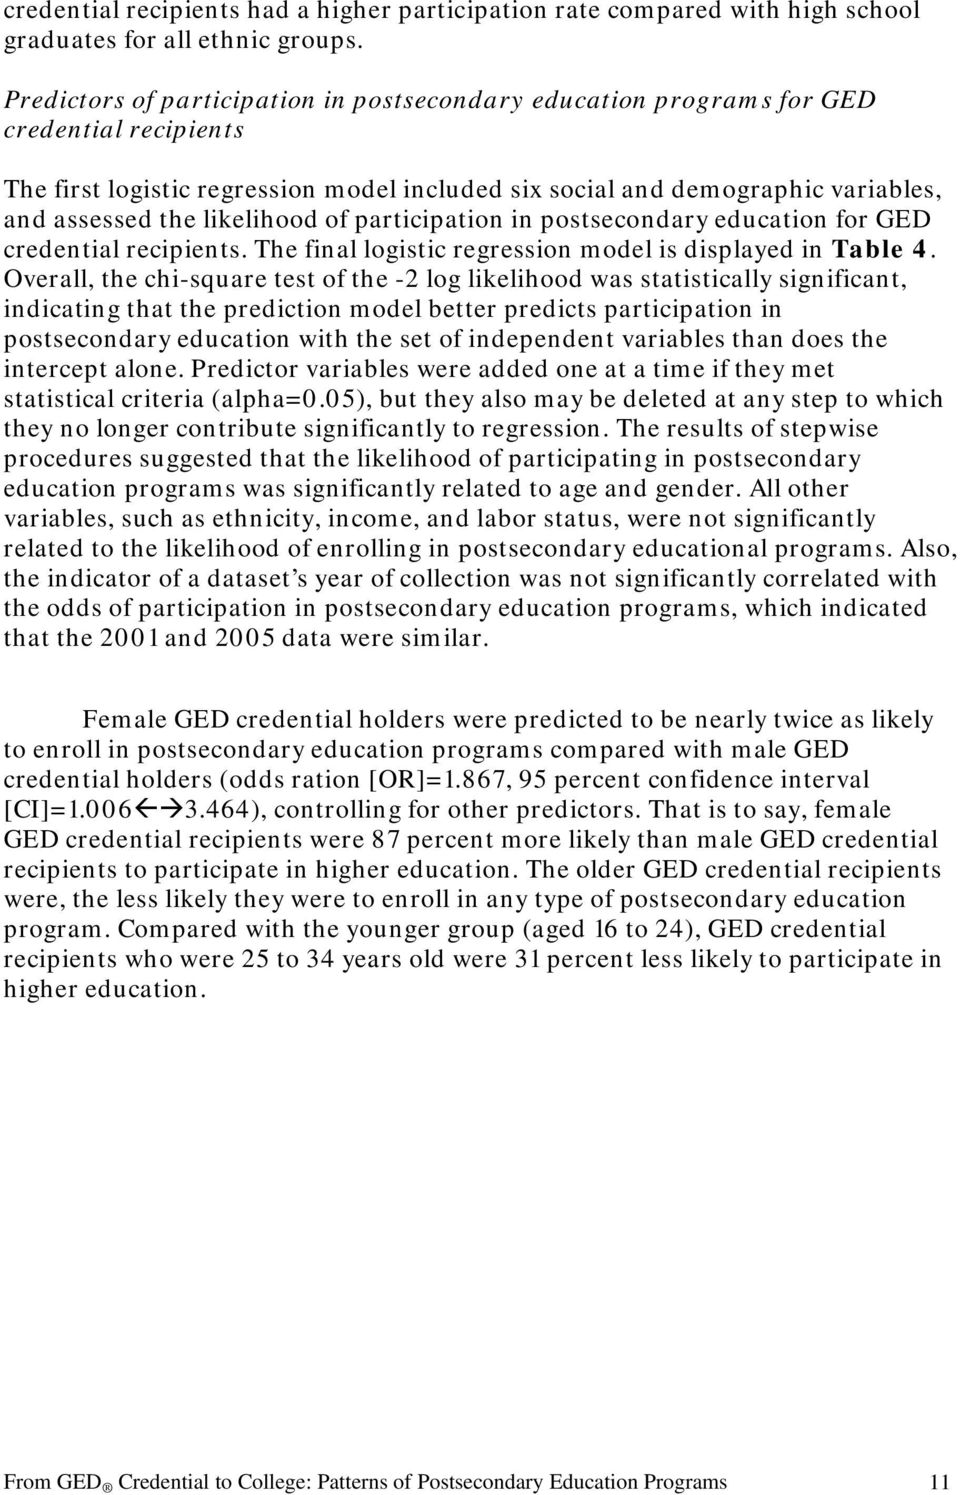 likelihood of participation in postsecondary education for GED credential recipients. The final logistic regression model is displayed in Table 4.